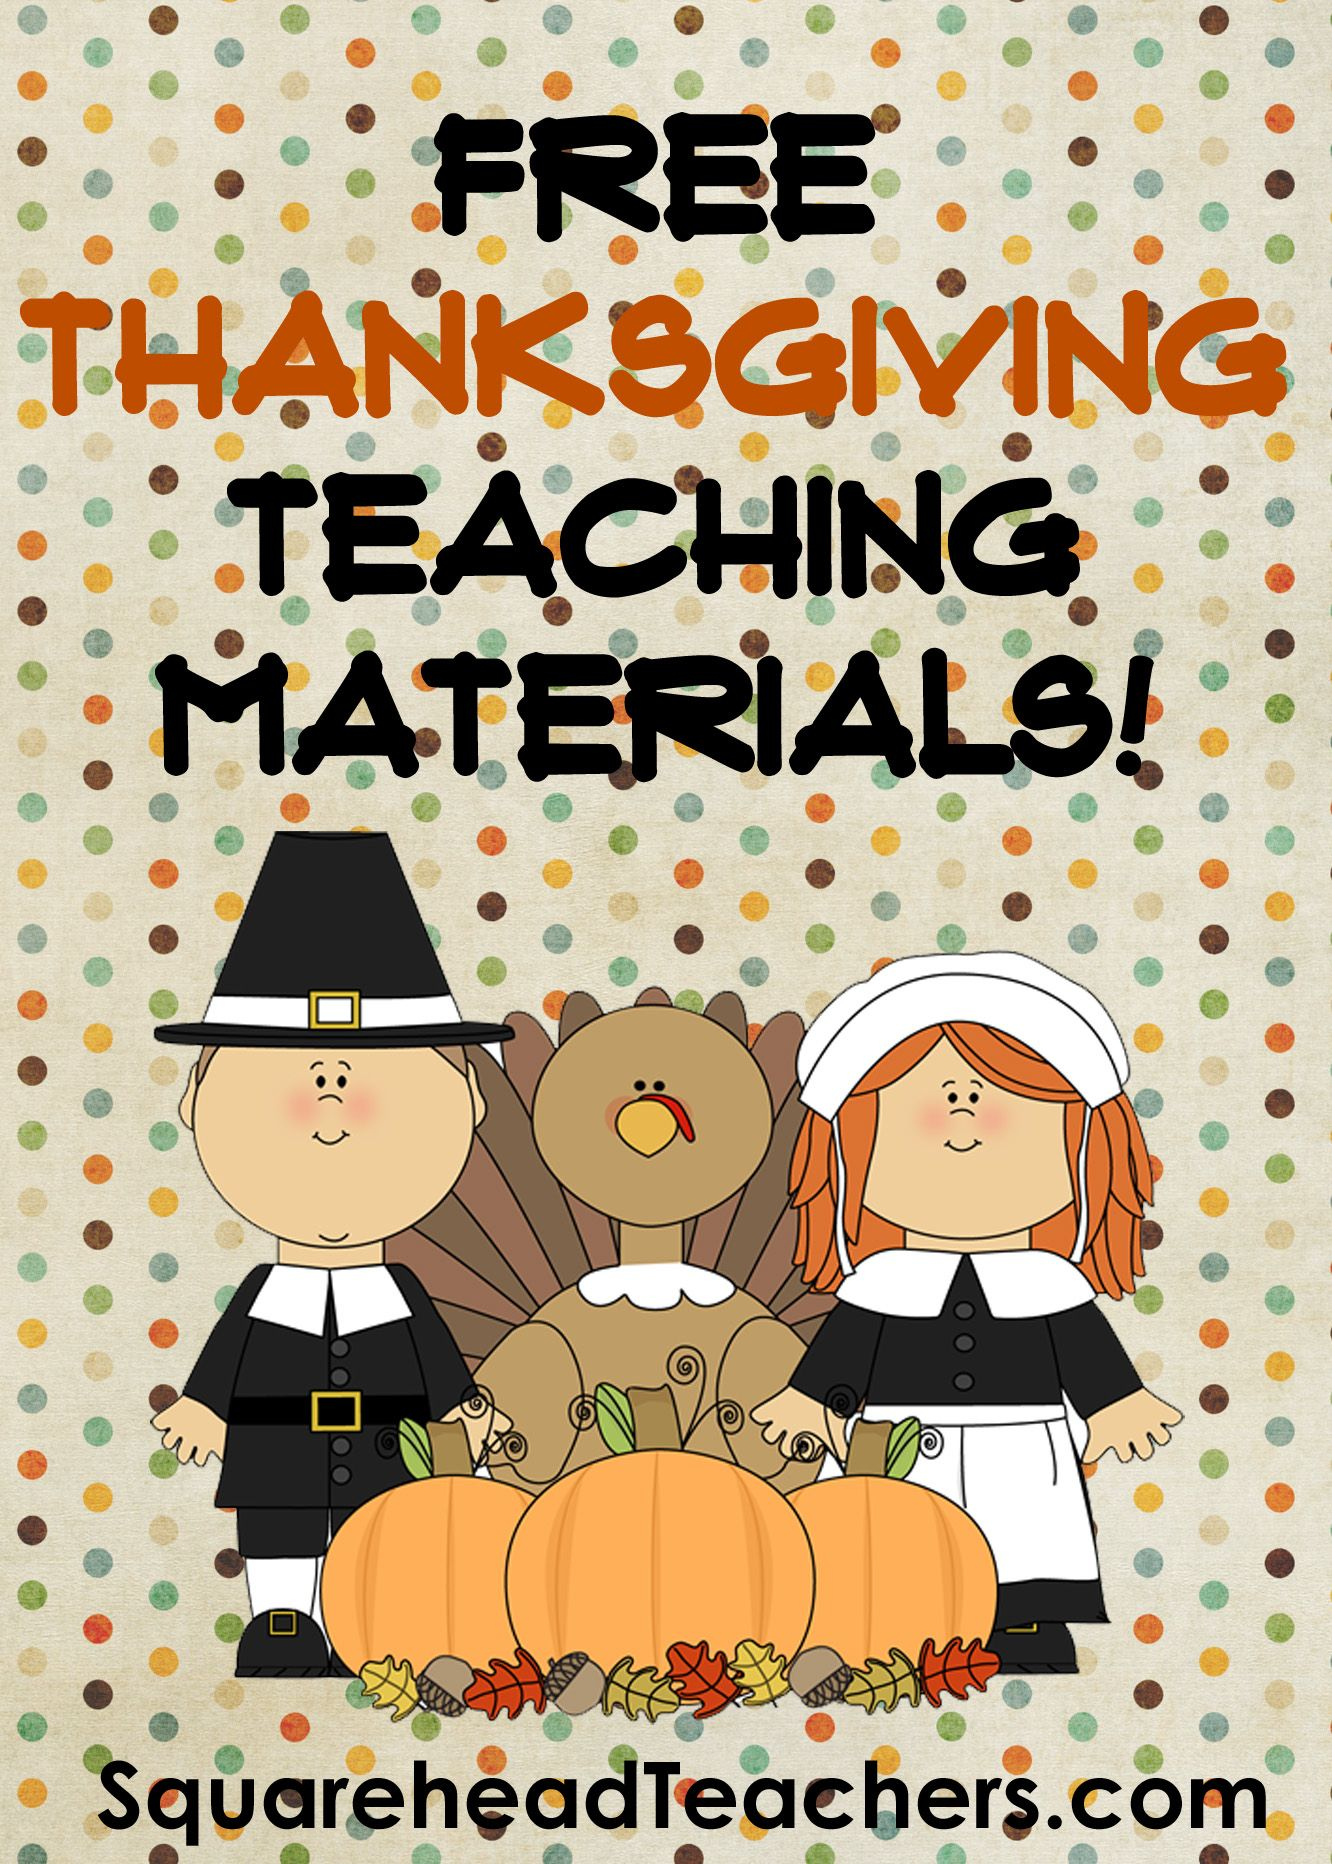 Squarehead Teachers Free Thanksgiving Worksheets